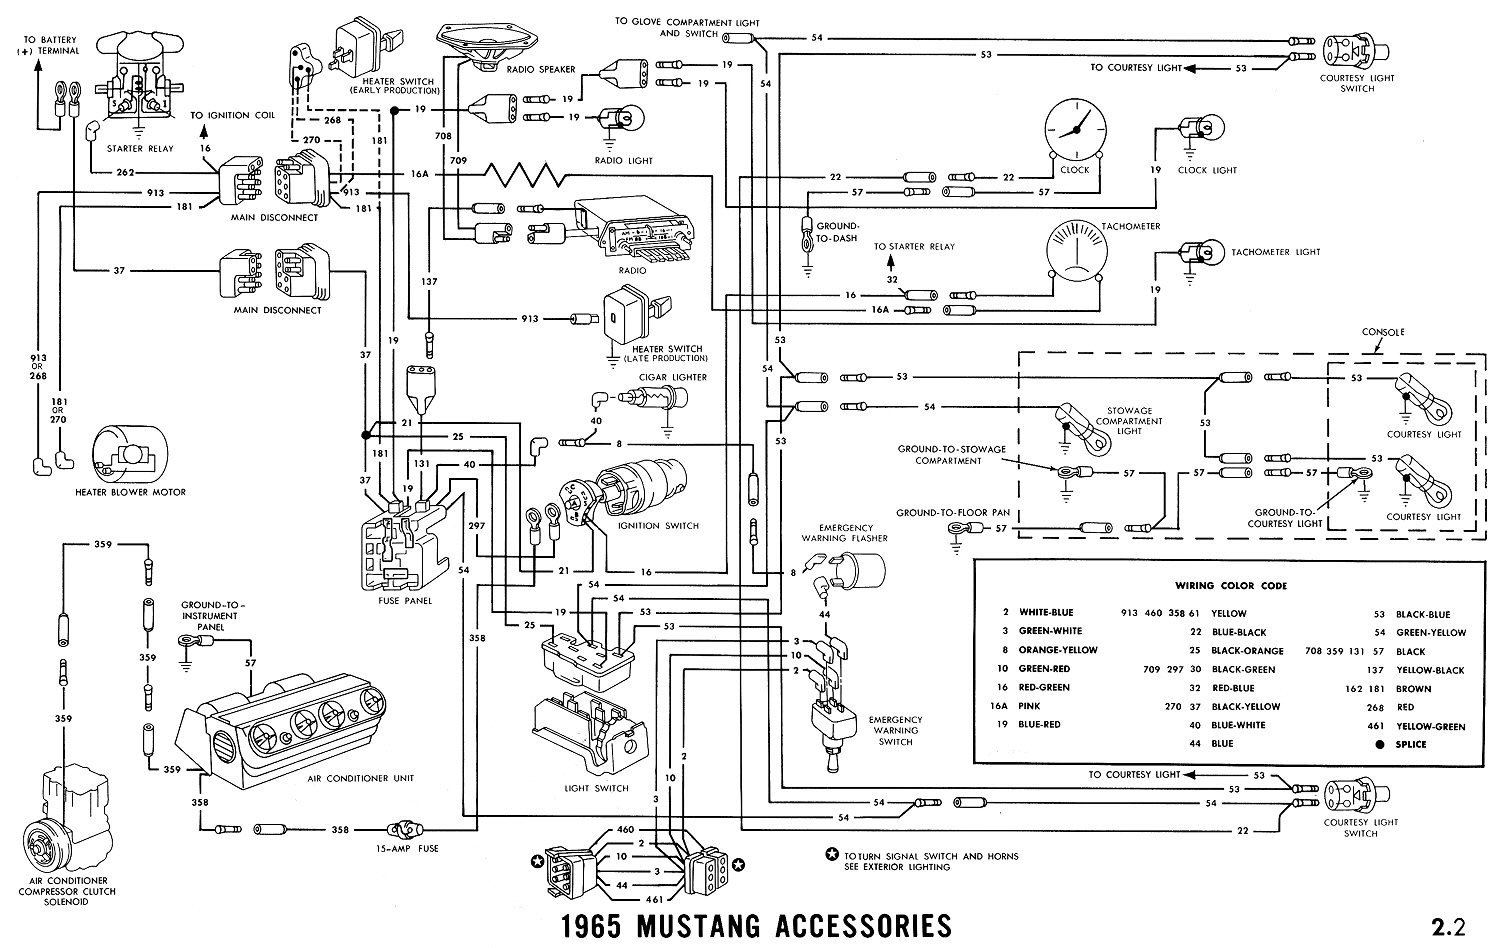 1965 Mustang Wiring Diagrams likewise 1965 Mustang Wiring Diagrams moreover 1968 Chevelle Ignition Switch Wiring Diagram together with 87 Chevy Pickup Underhood Wiring Diagram together with Cruiser Fuse Box Under Hood 66b7f7e Latter Day Print Need Diagram For 06. on 66 mustang under hood wiring diagram